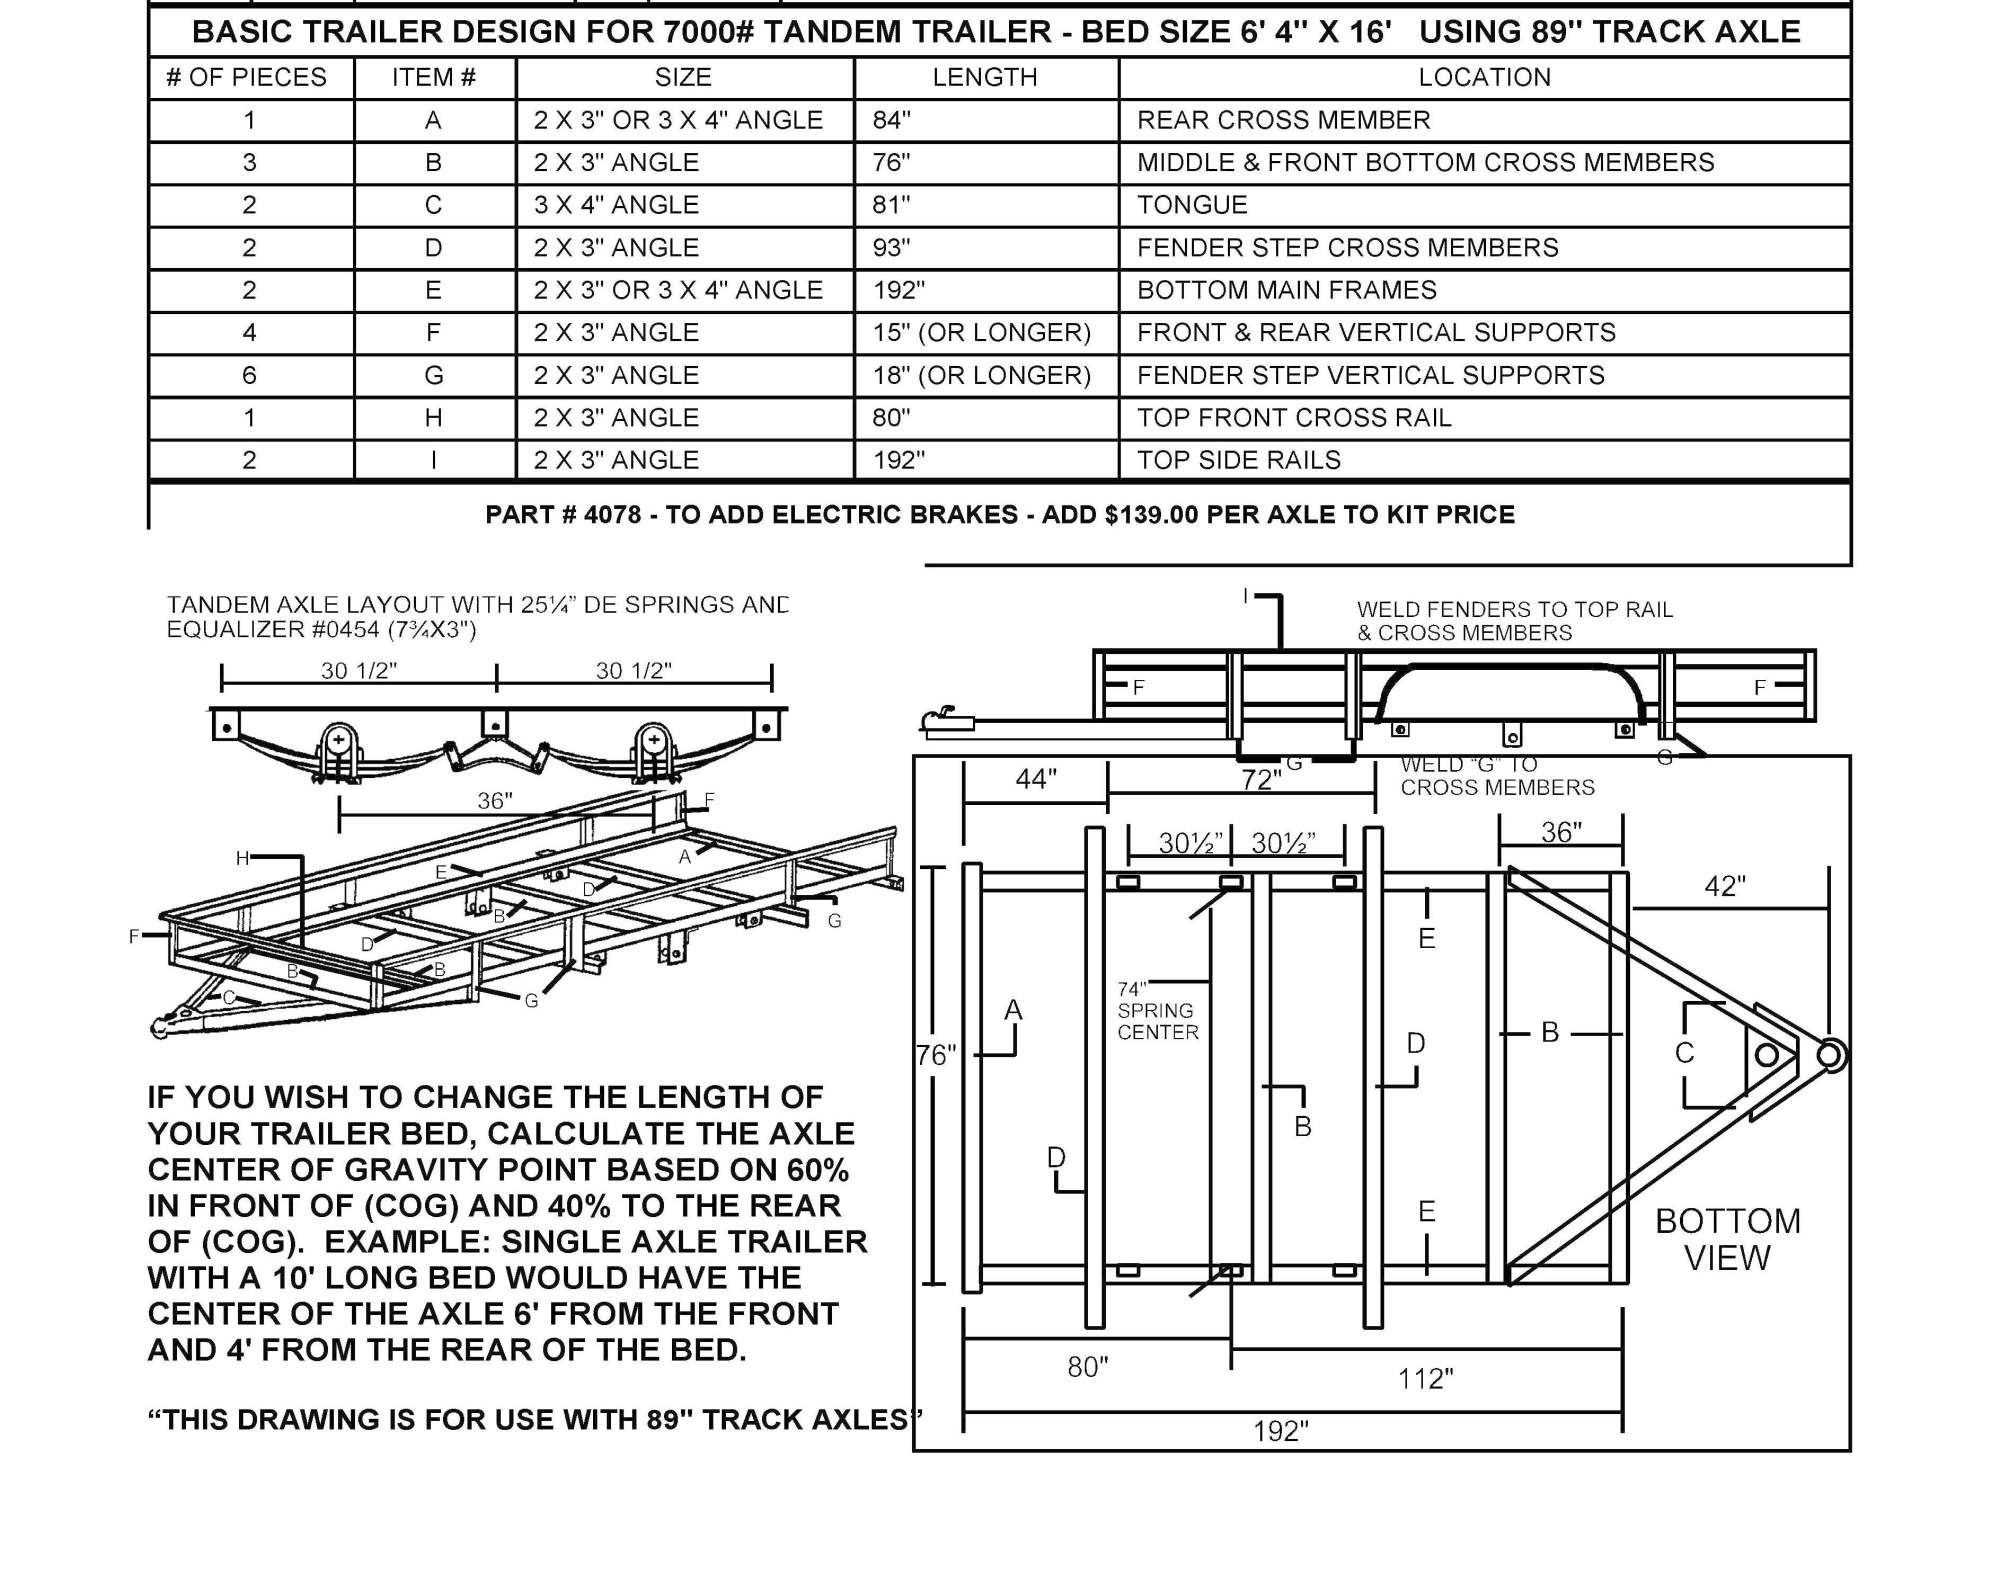 hight resolution of wiring diagram for a utility trailer the wiring diagram us cargo trailer wiring diagram nilza wiring